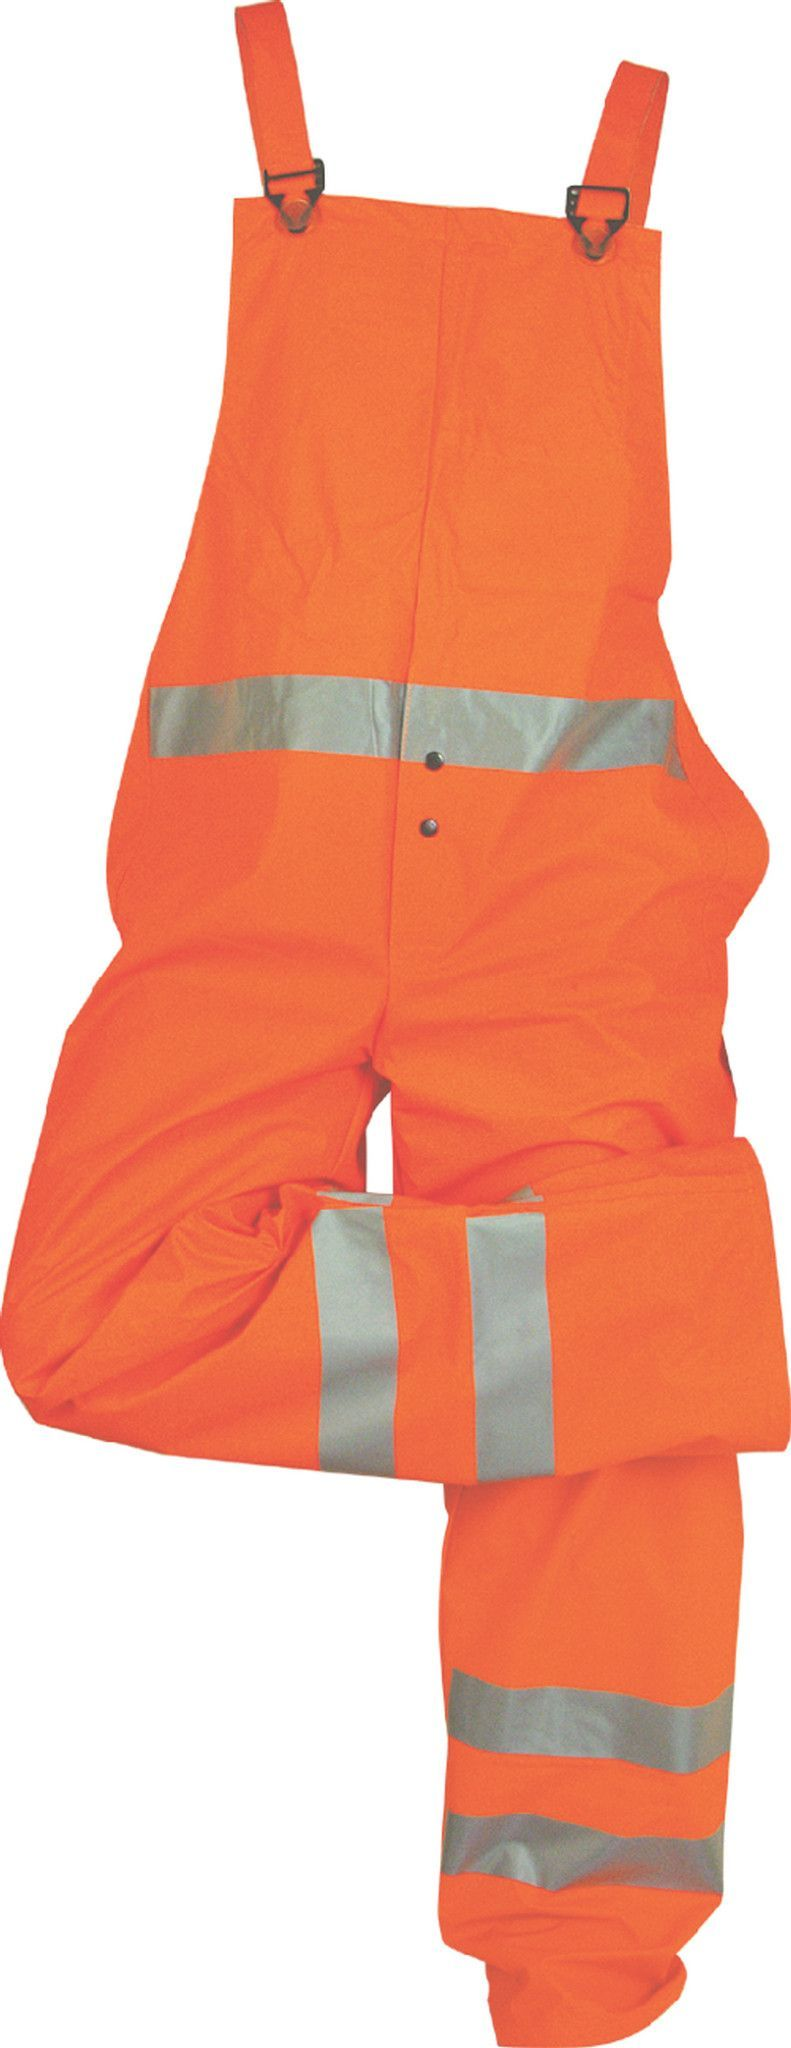 Majestic 75429FO Hi Vis Orange Flexothane Bib Trousers ANSI Class 3